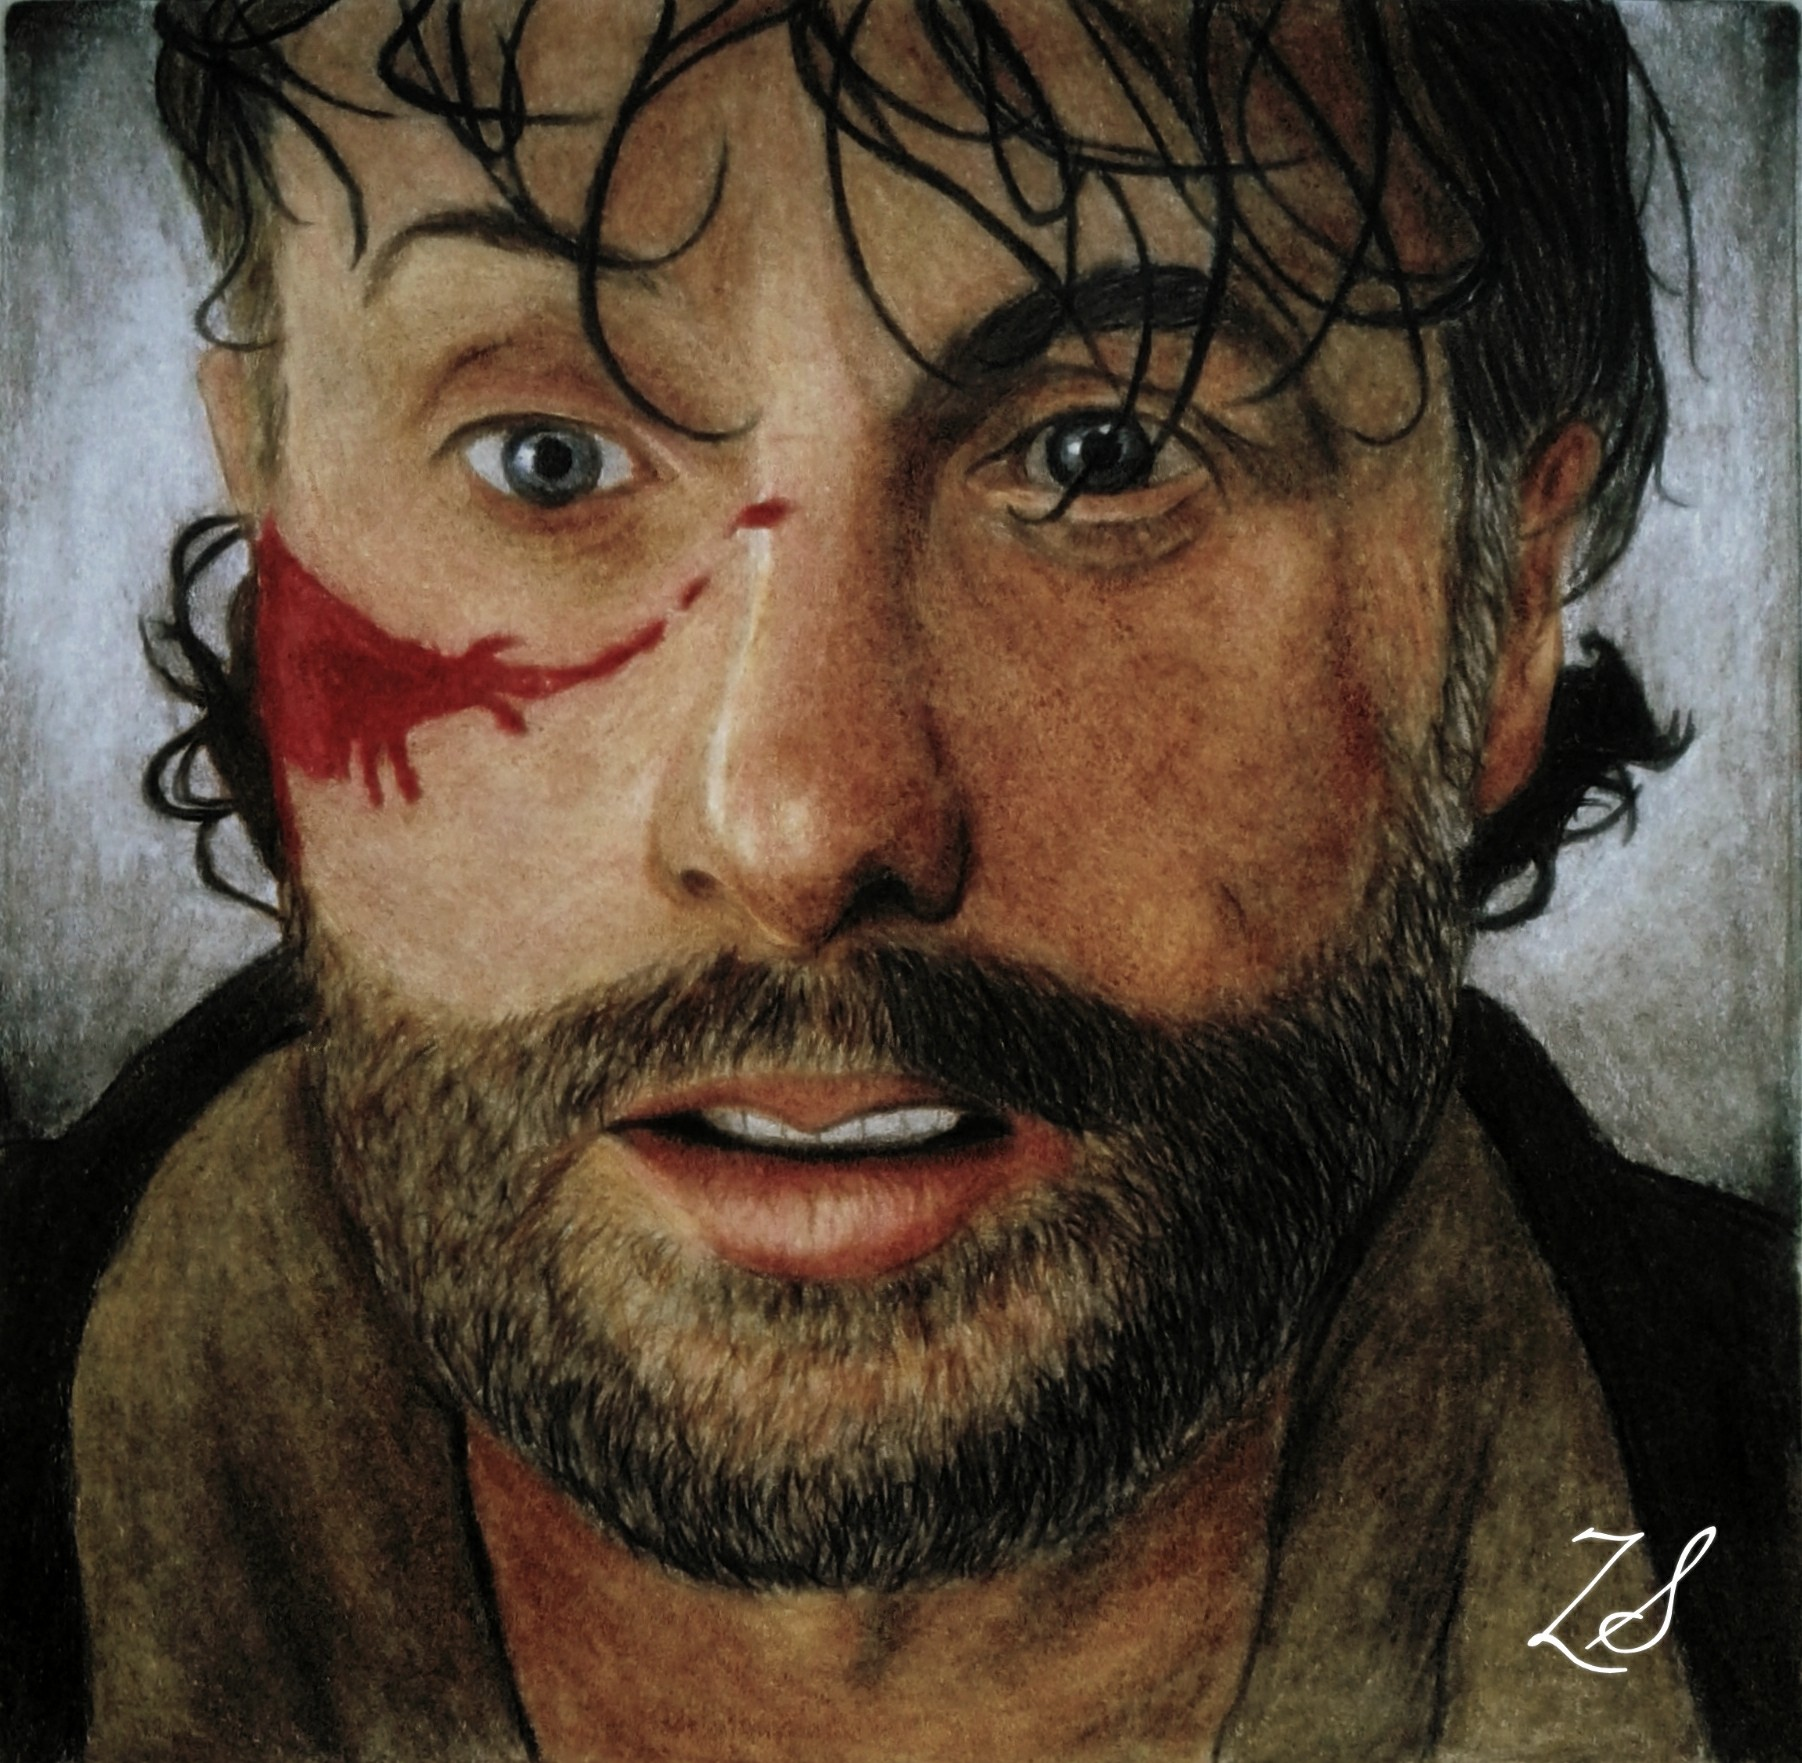 Rick Grimes (The Walking Dead)